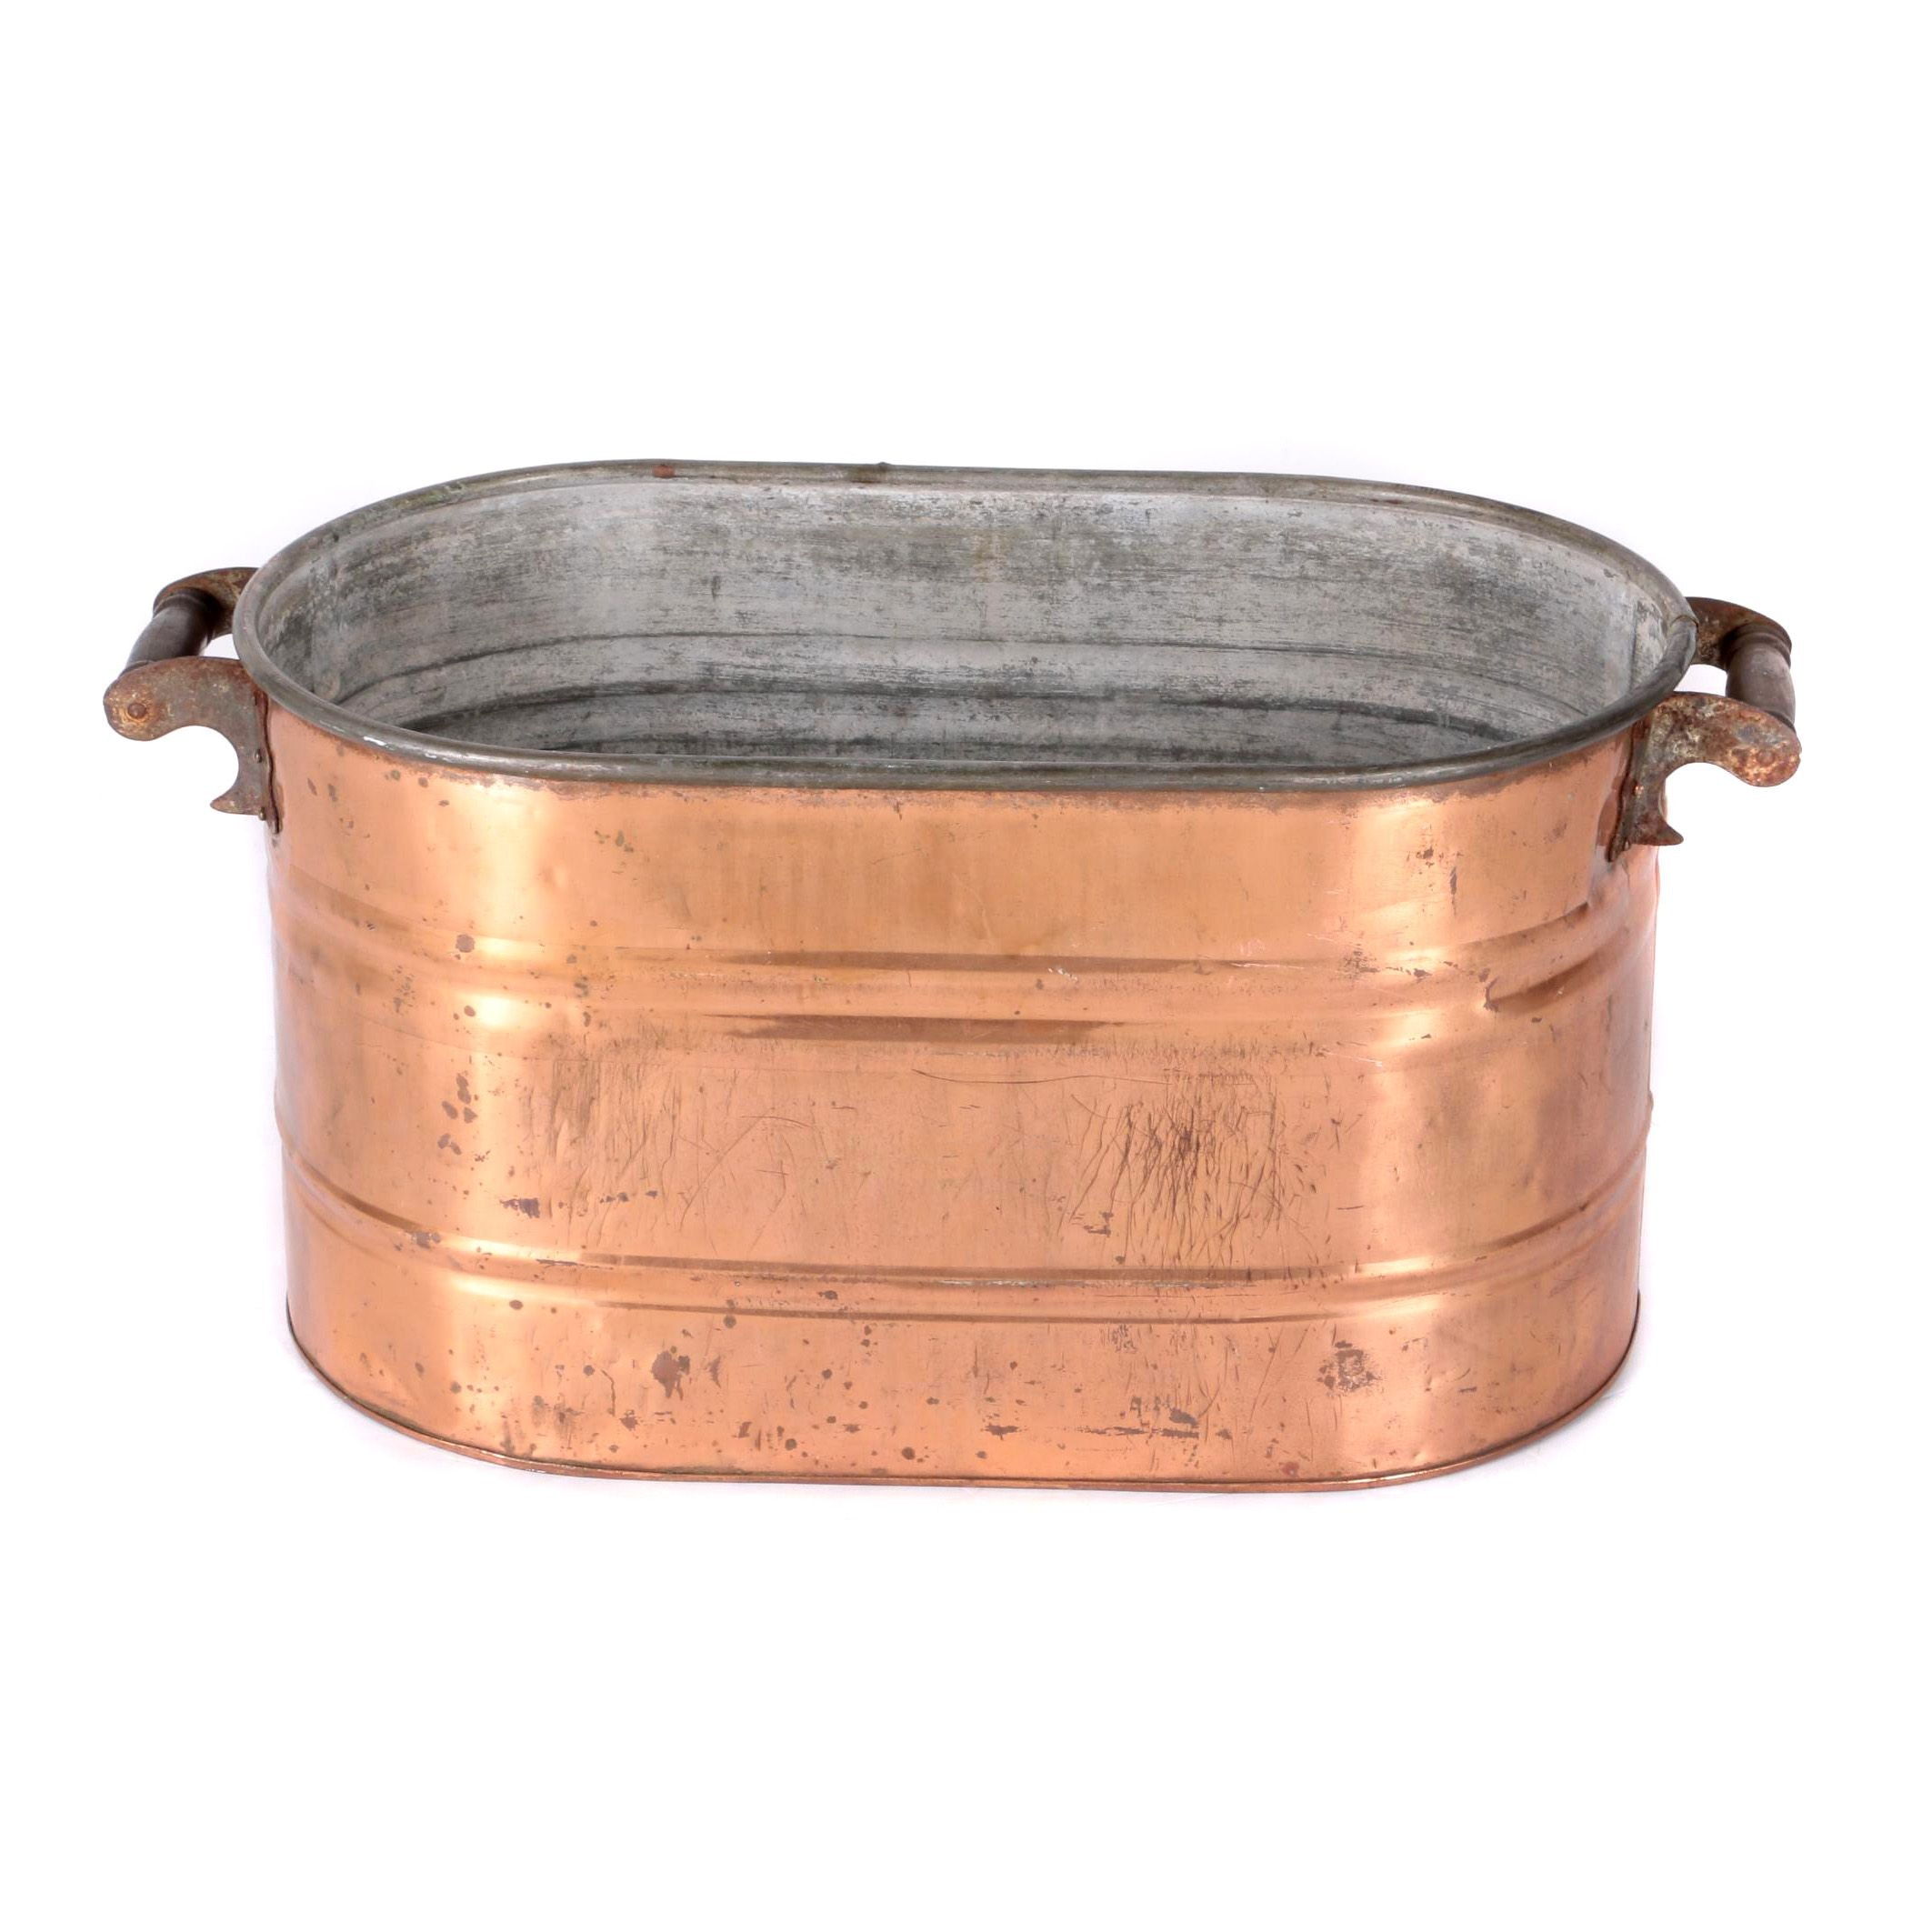 Oval Copper Boiler Steamer Pot